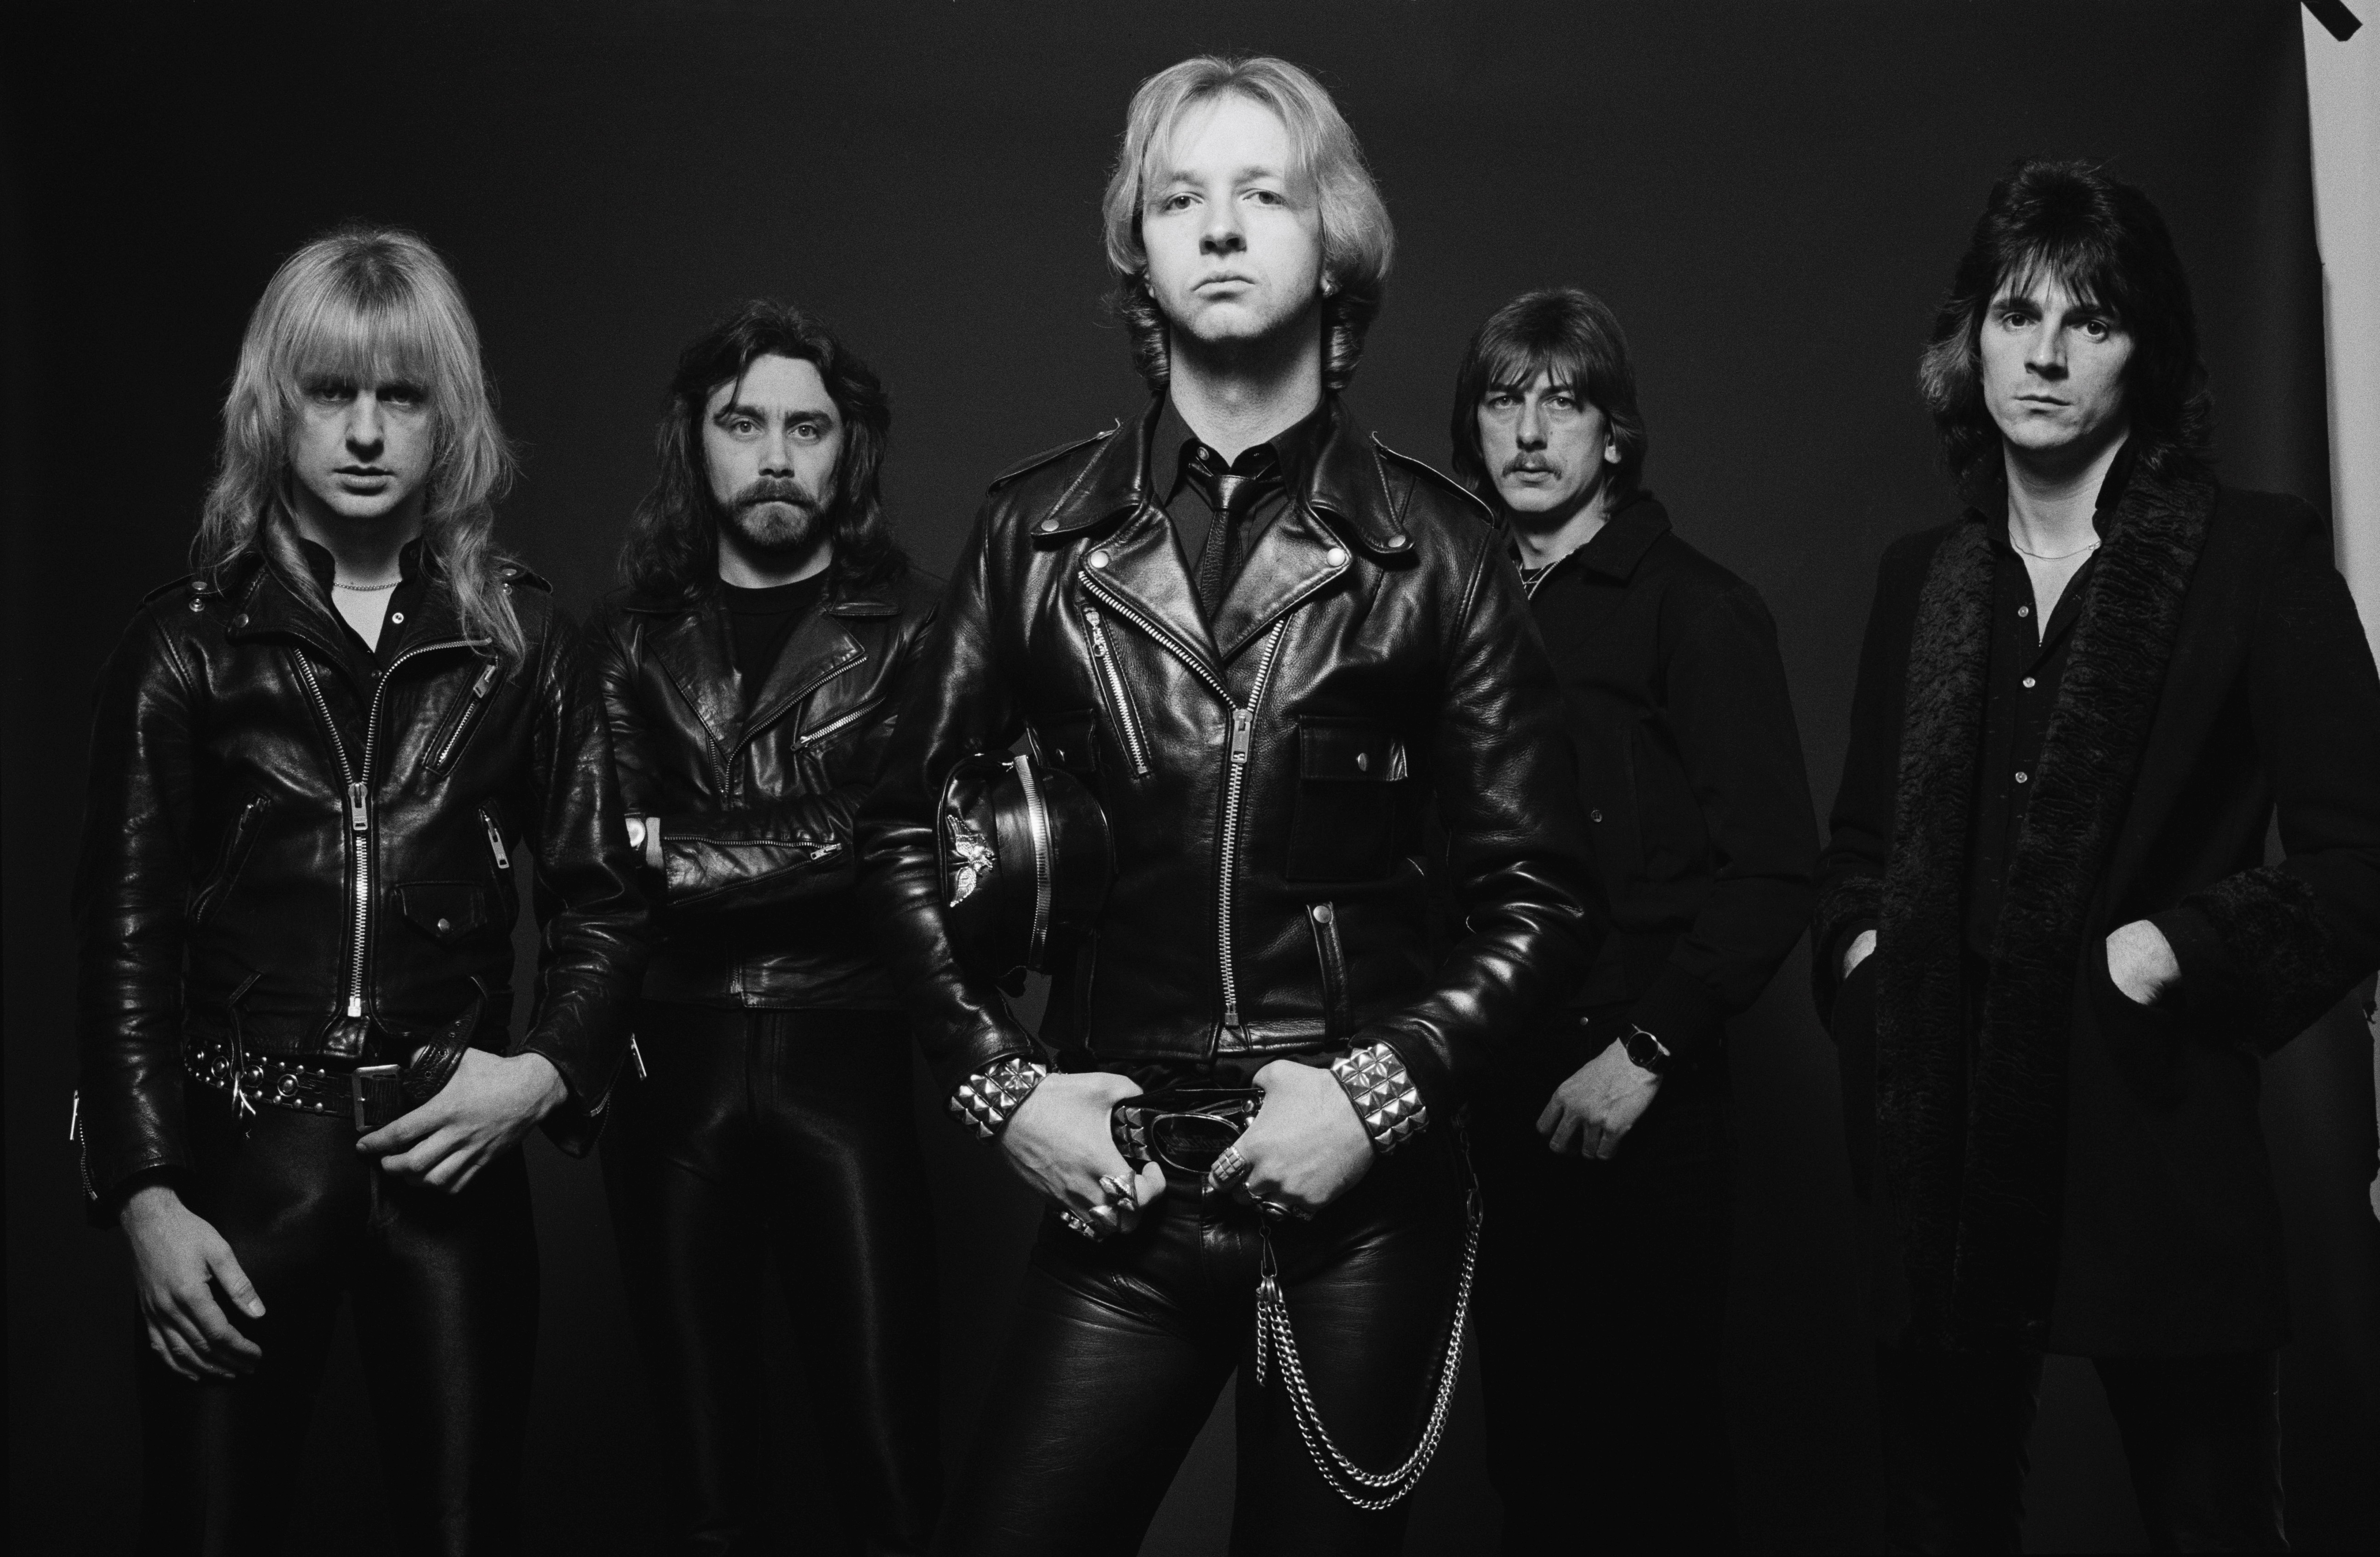 Judas Priest's 'British Steel': The Story Behind the Cover Art